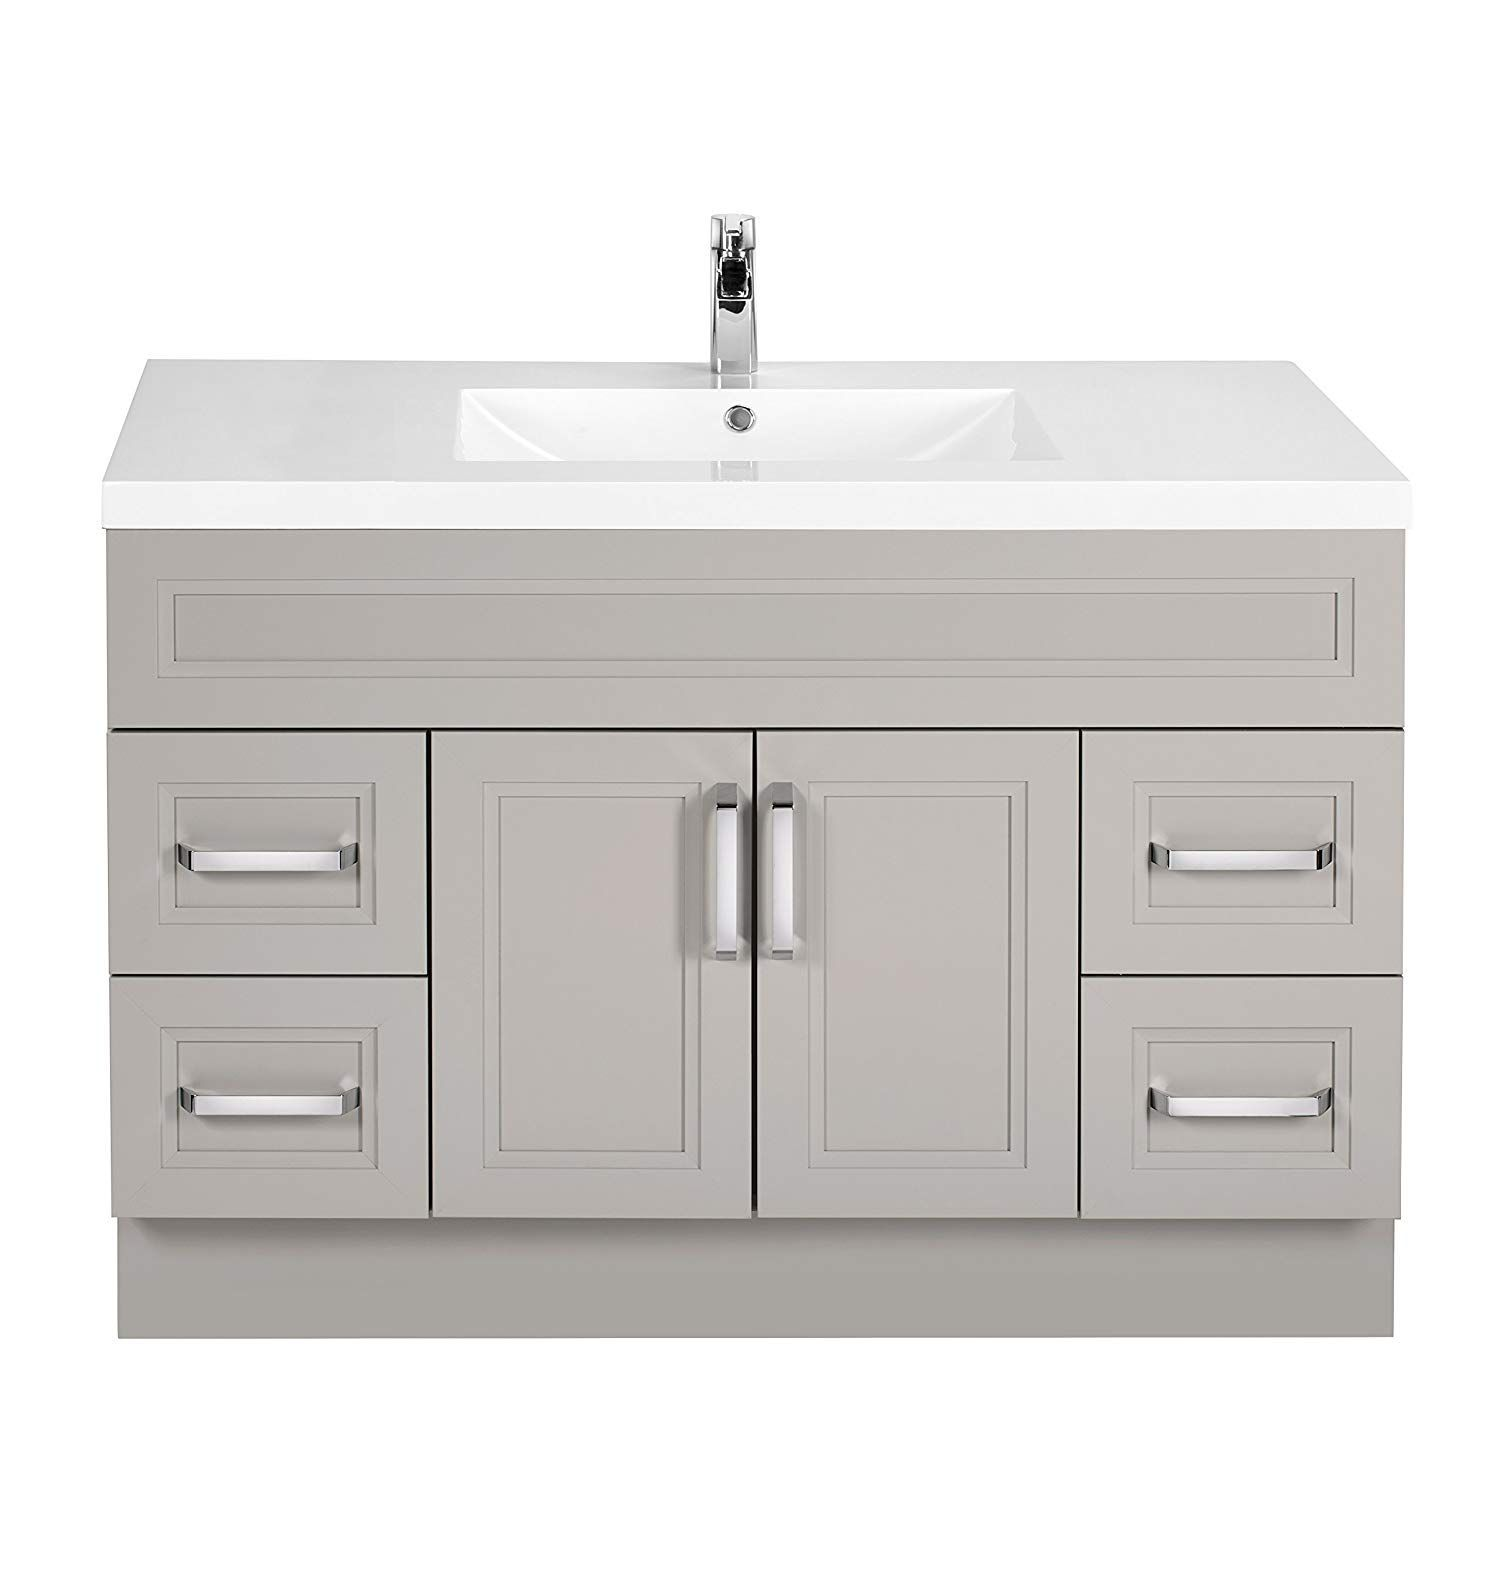 Cutler Kitchen And Bath Silhouette 30 In Wall Mount Bathroom